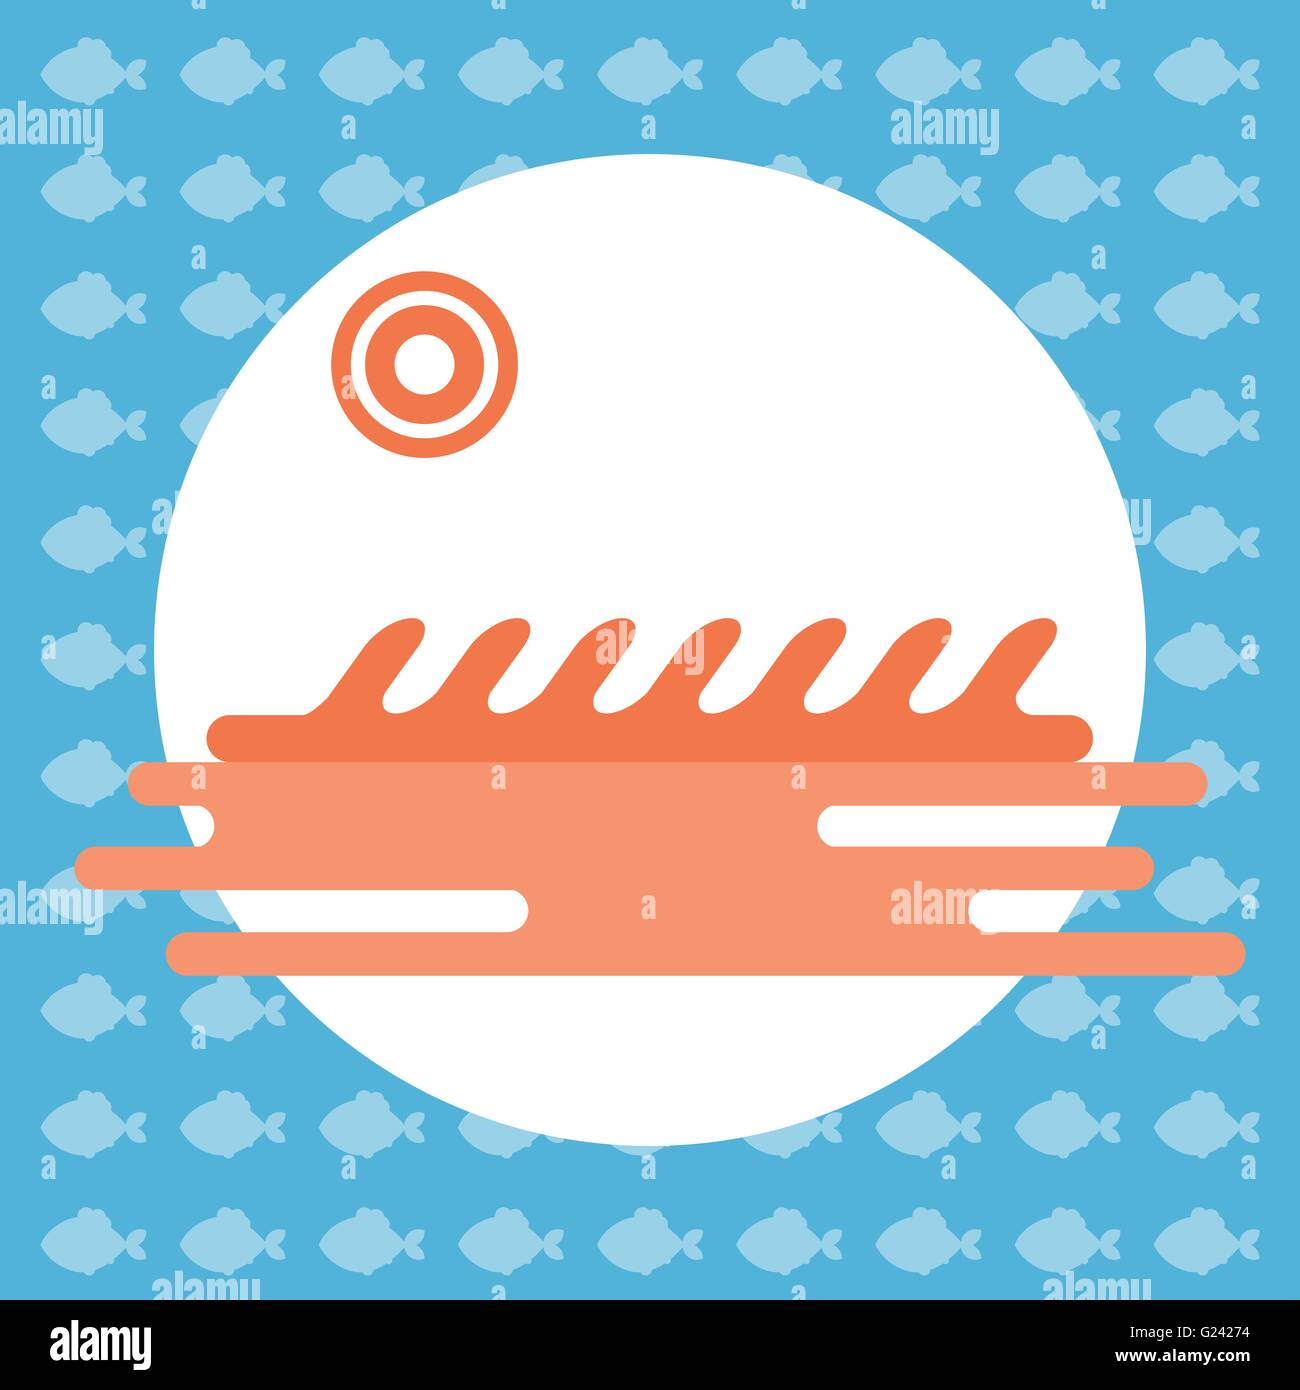 Abstract illustration with ocean water and a sun in a round frame, over an blue background with fish. Digital vector - Stock Vector